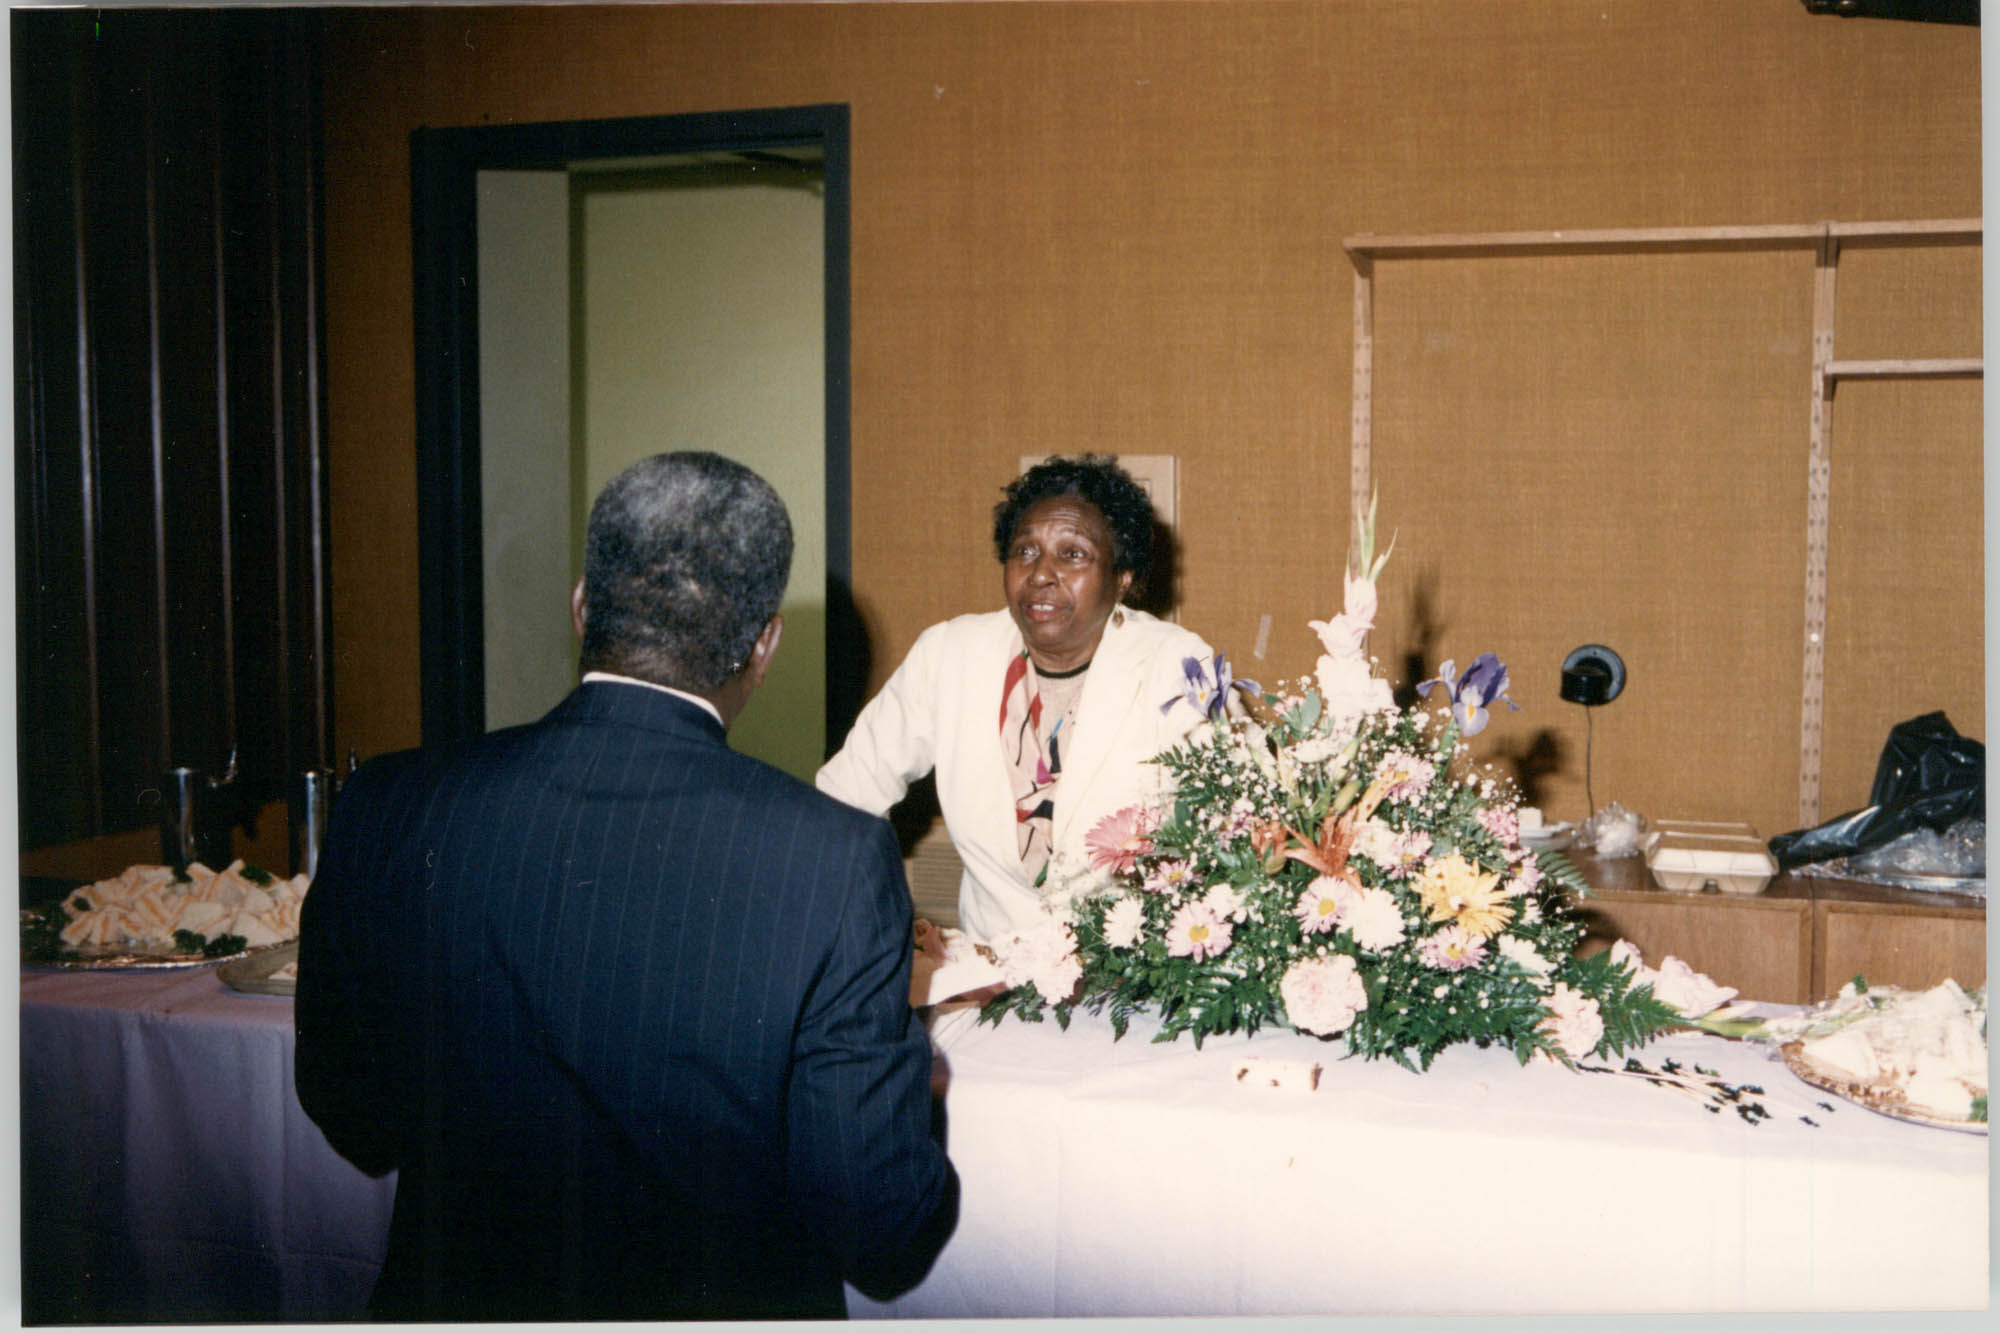 Photograph of a Man and a Woman at a College of Charleston Event